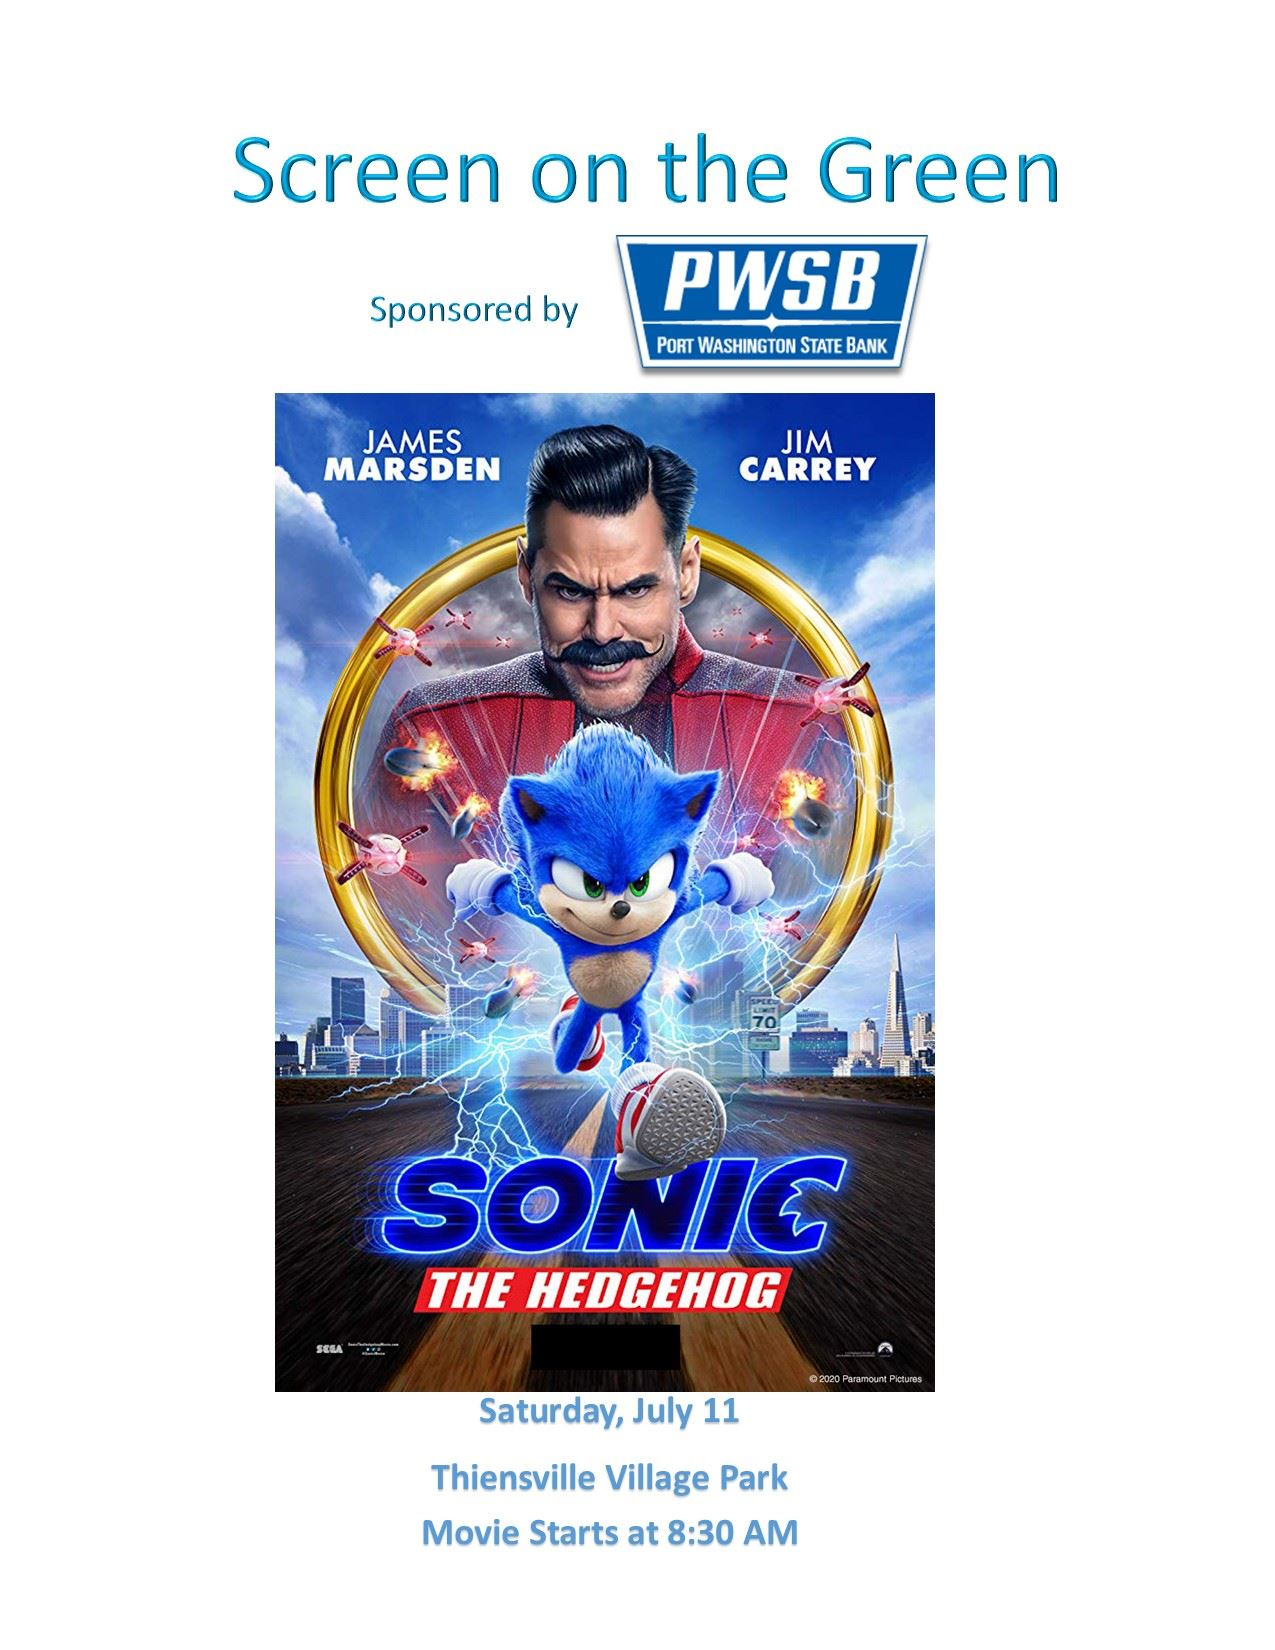 Screen on Green Sonic Poster JPEG